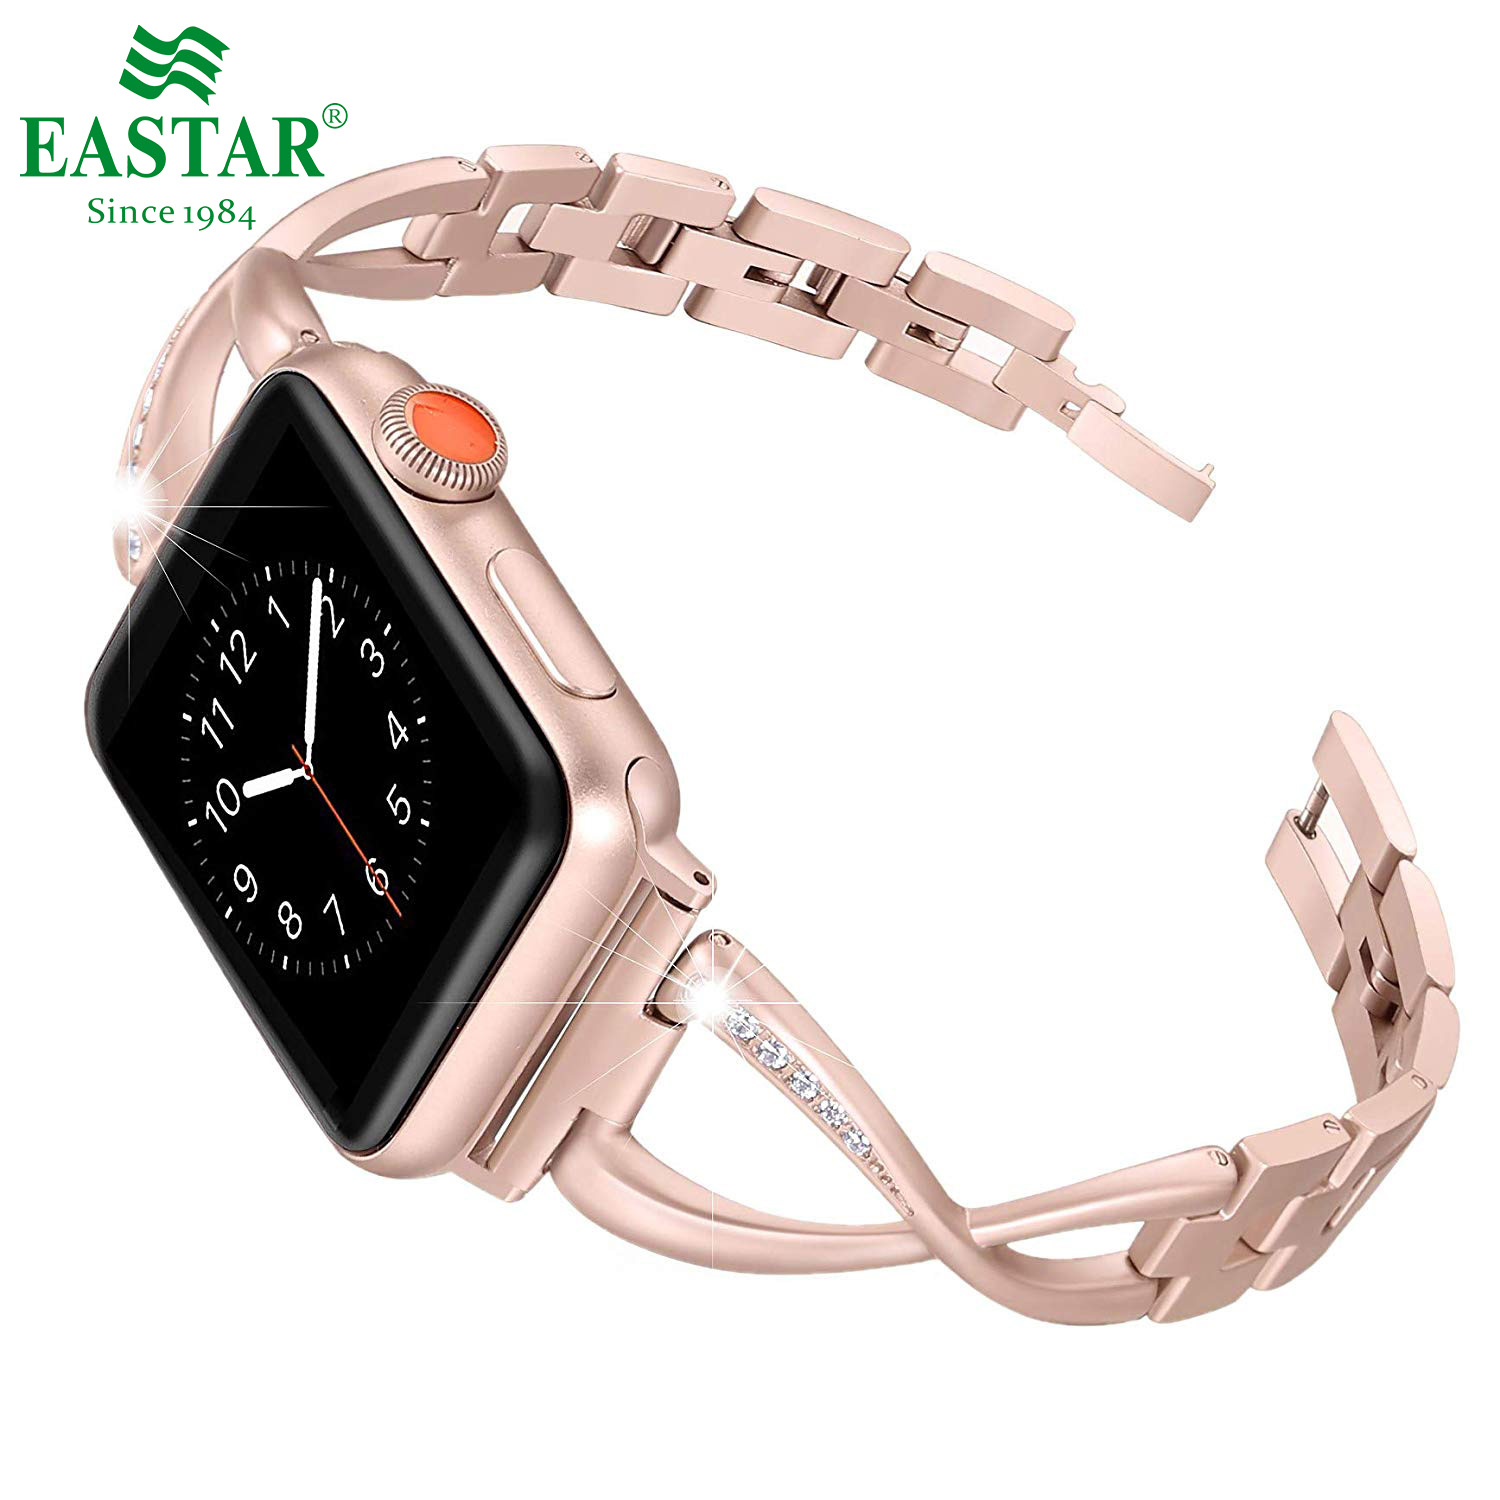 Eastar Women Watch Band For Apple Watch Bands 38/42mm 40/44mm Diamond Aluminum Alloy Strap For Iwatch Series 4 3 2 1 Bracelet